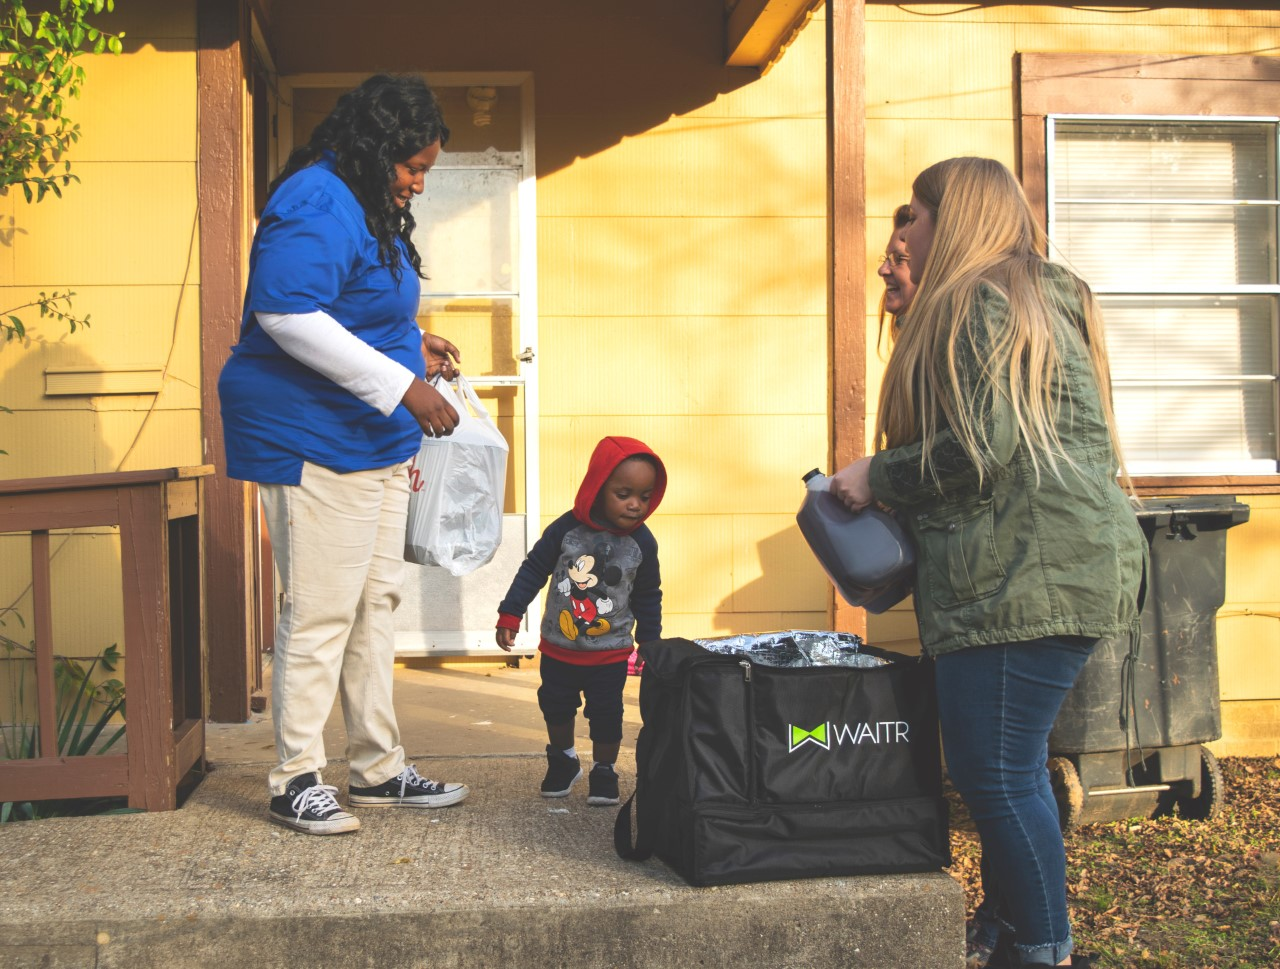 A local food delivery app will deliver Thanksgiving meals to families in need in Lynchburg today. (Photo: Courtesy Waitr)